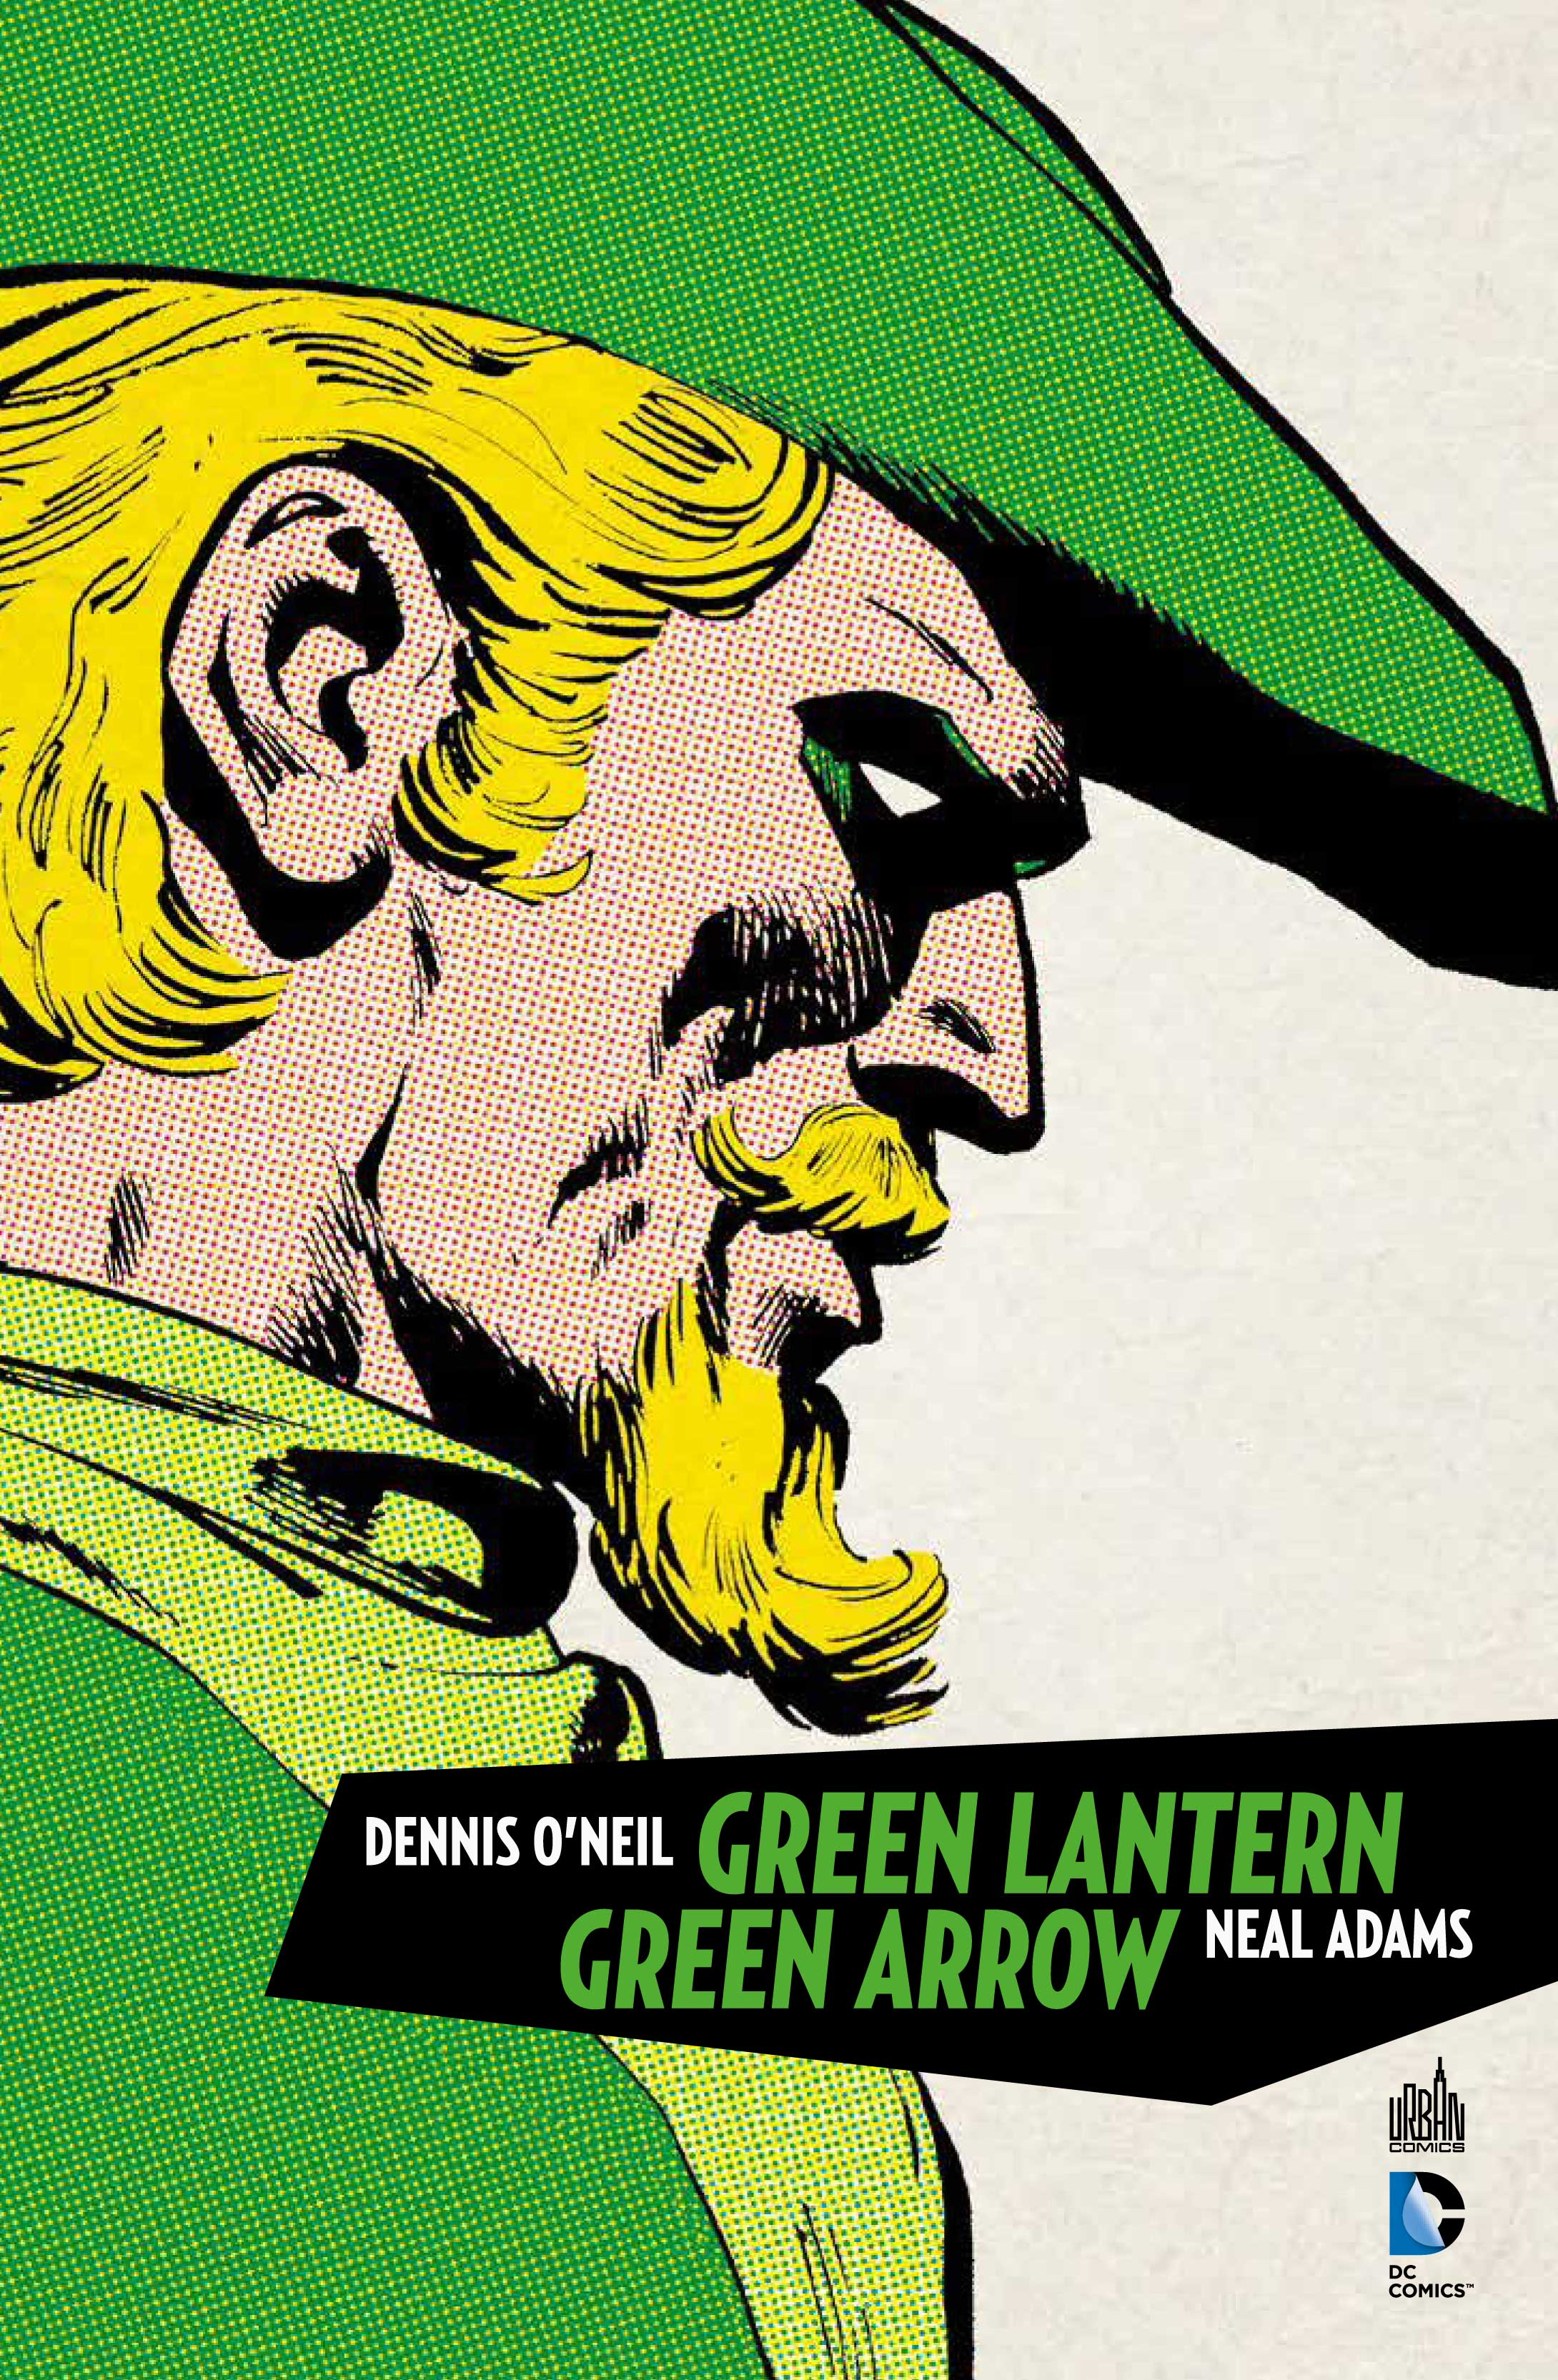 Critique de Green Lantern Green Arrow - Dennis O Neil et Neal Adams